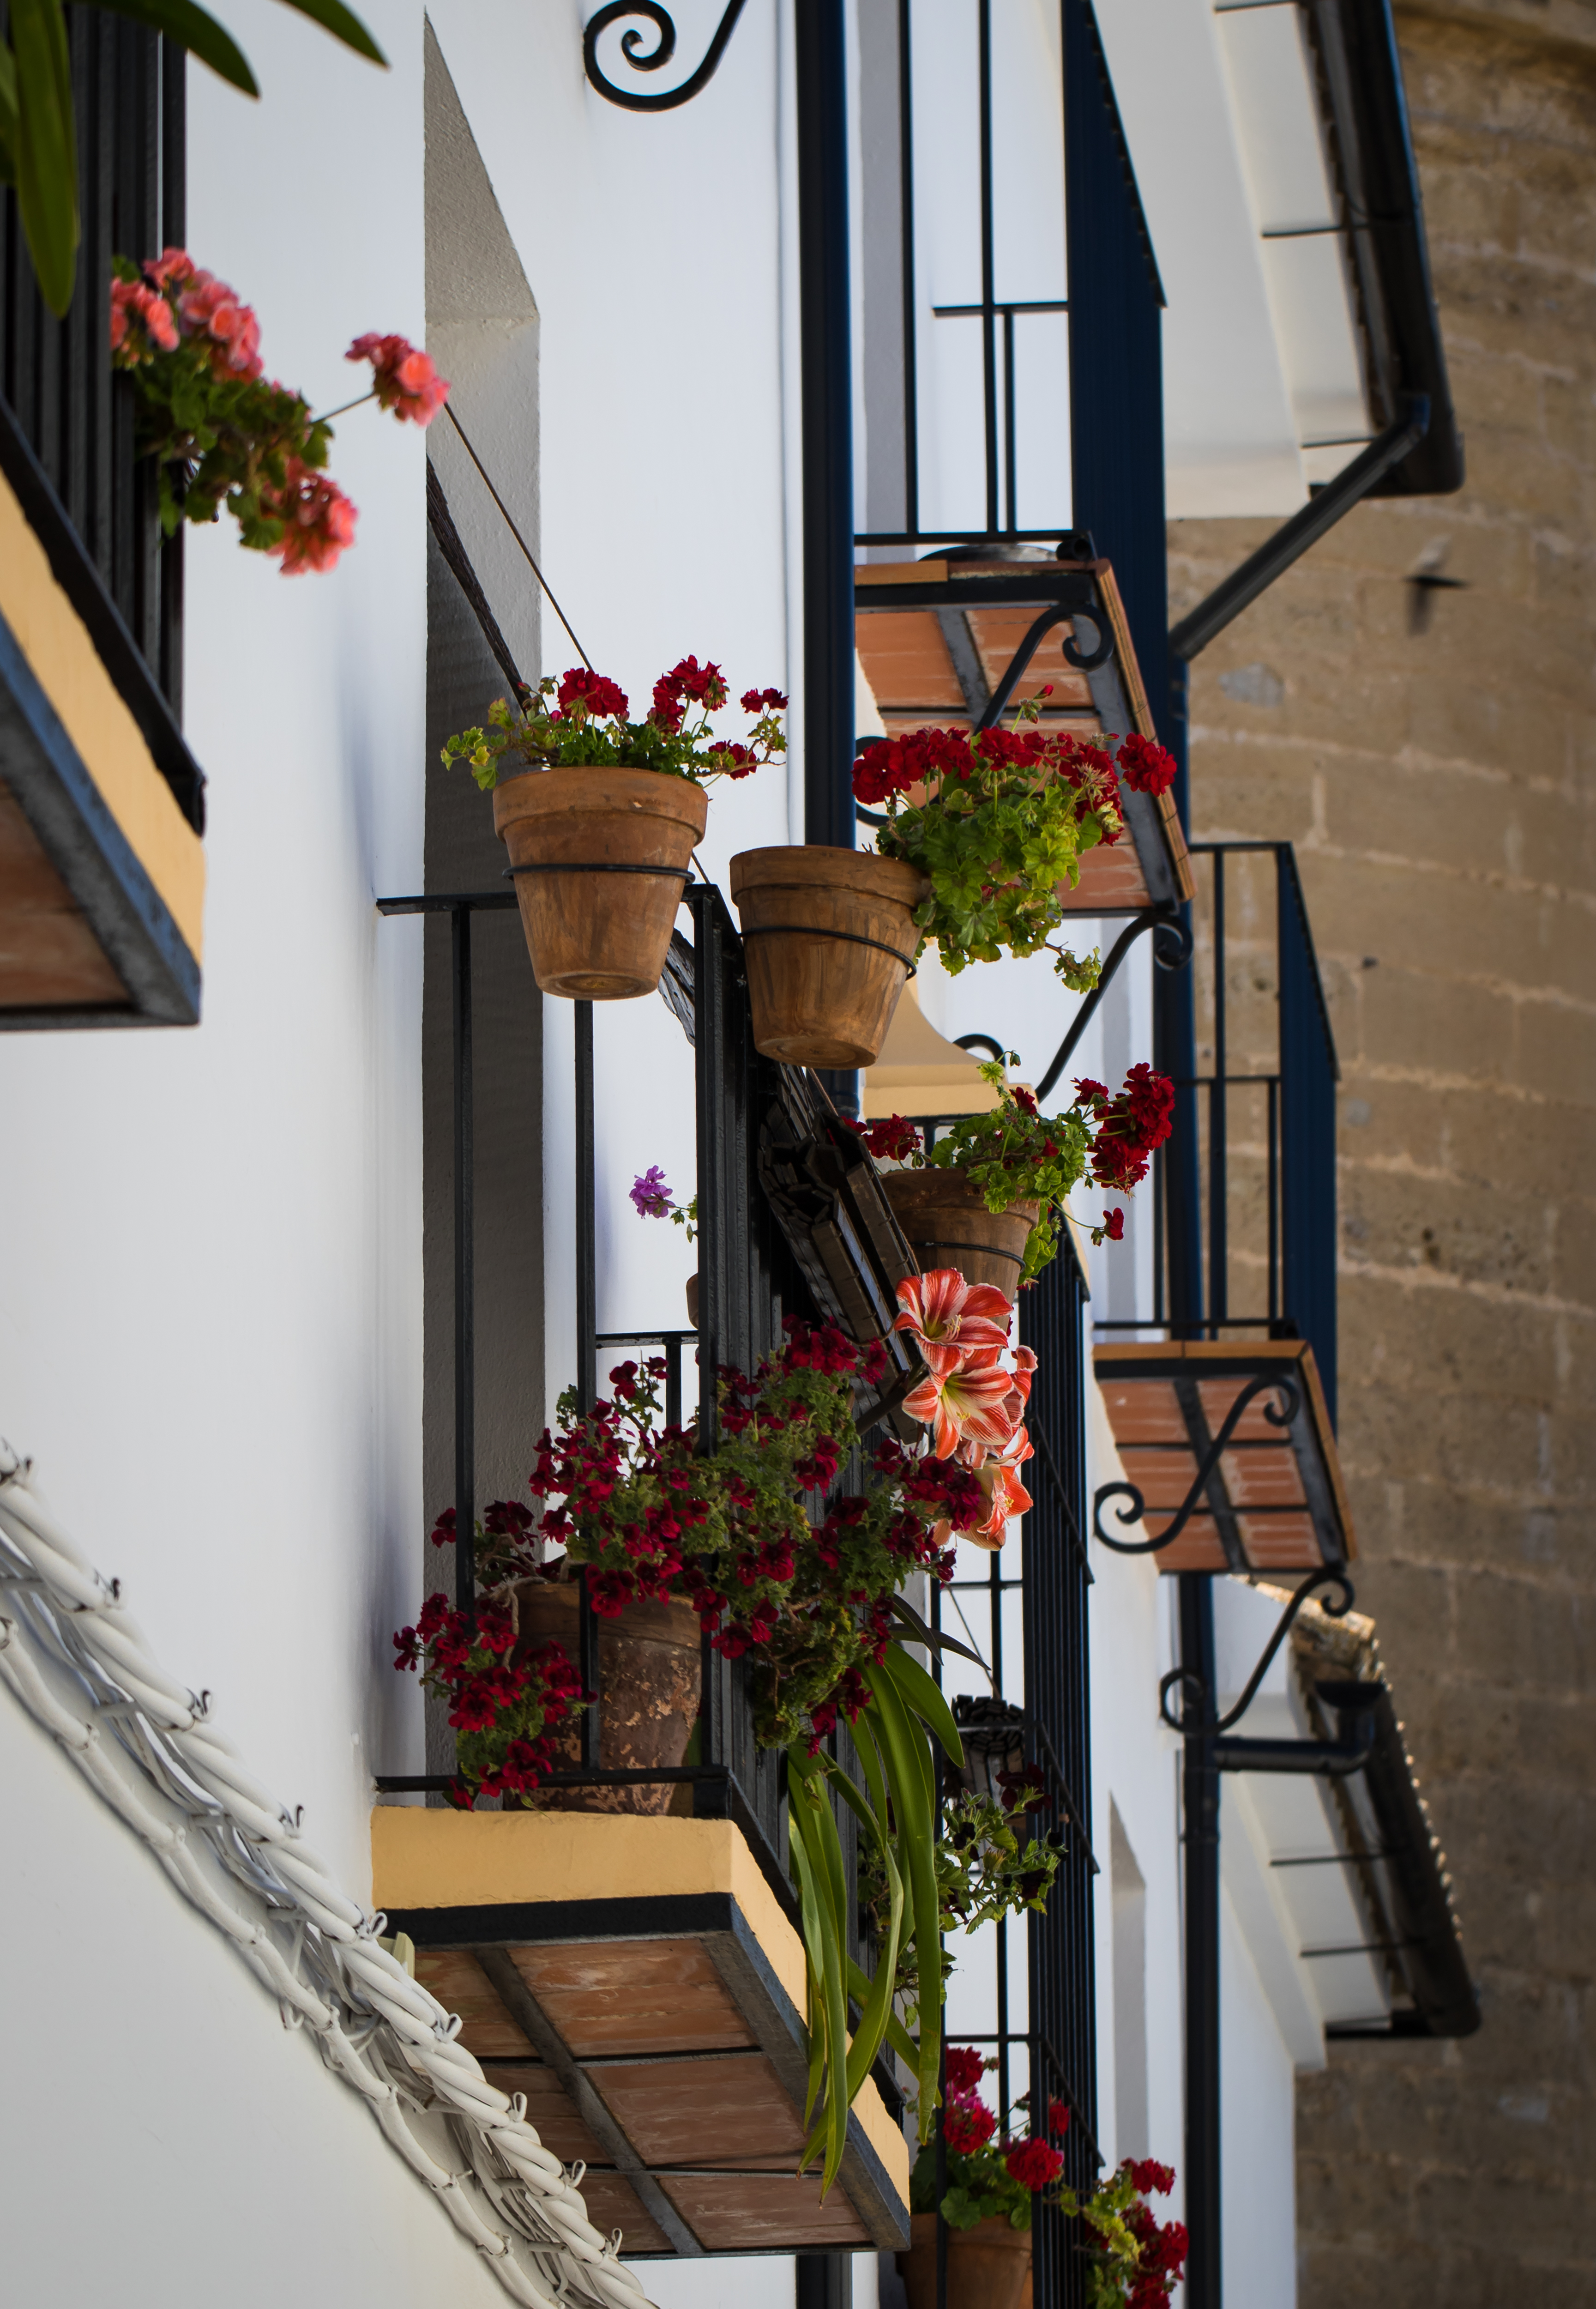 Flowers on a house in Spain